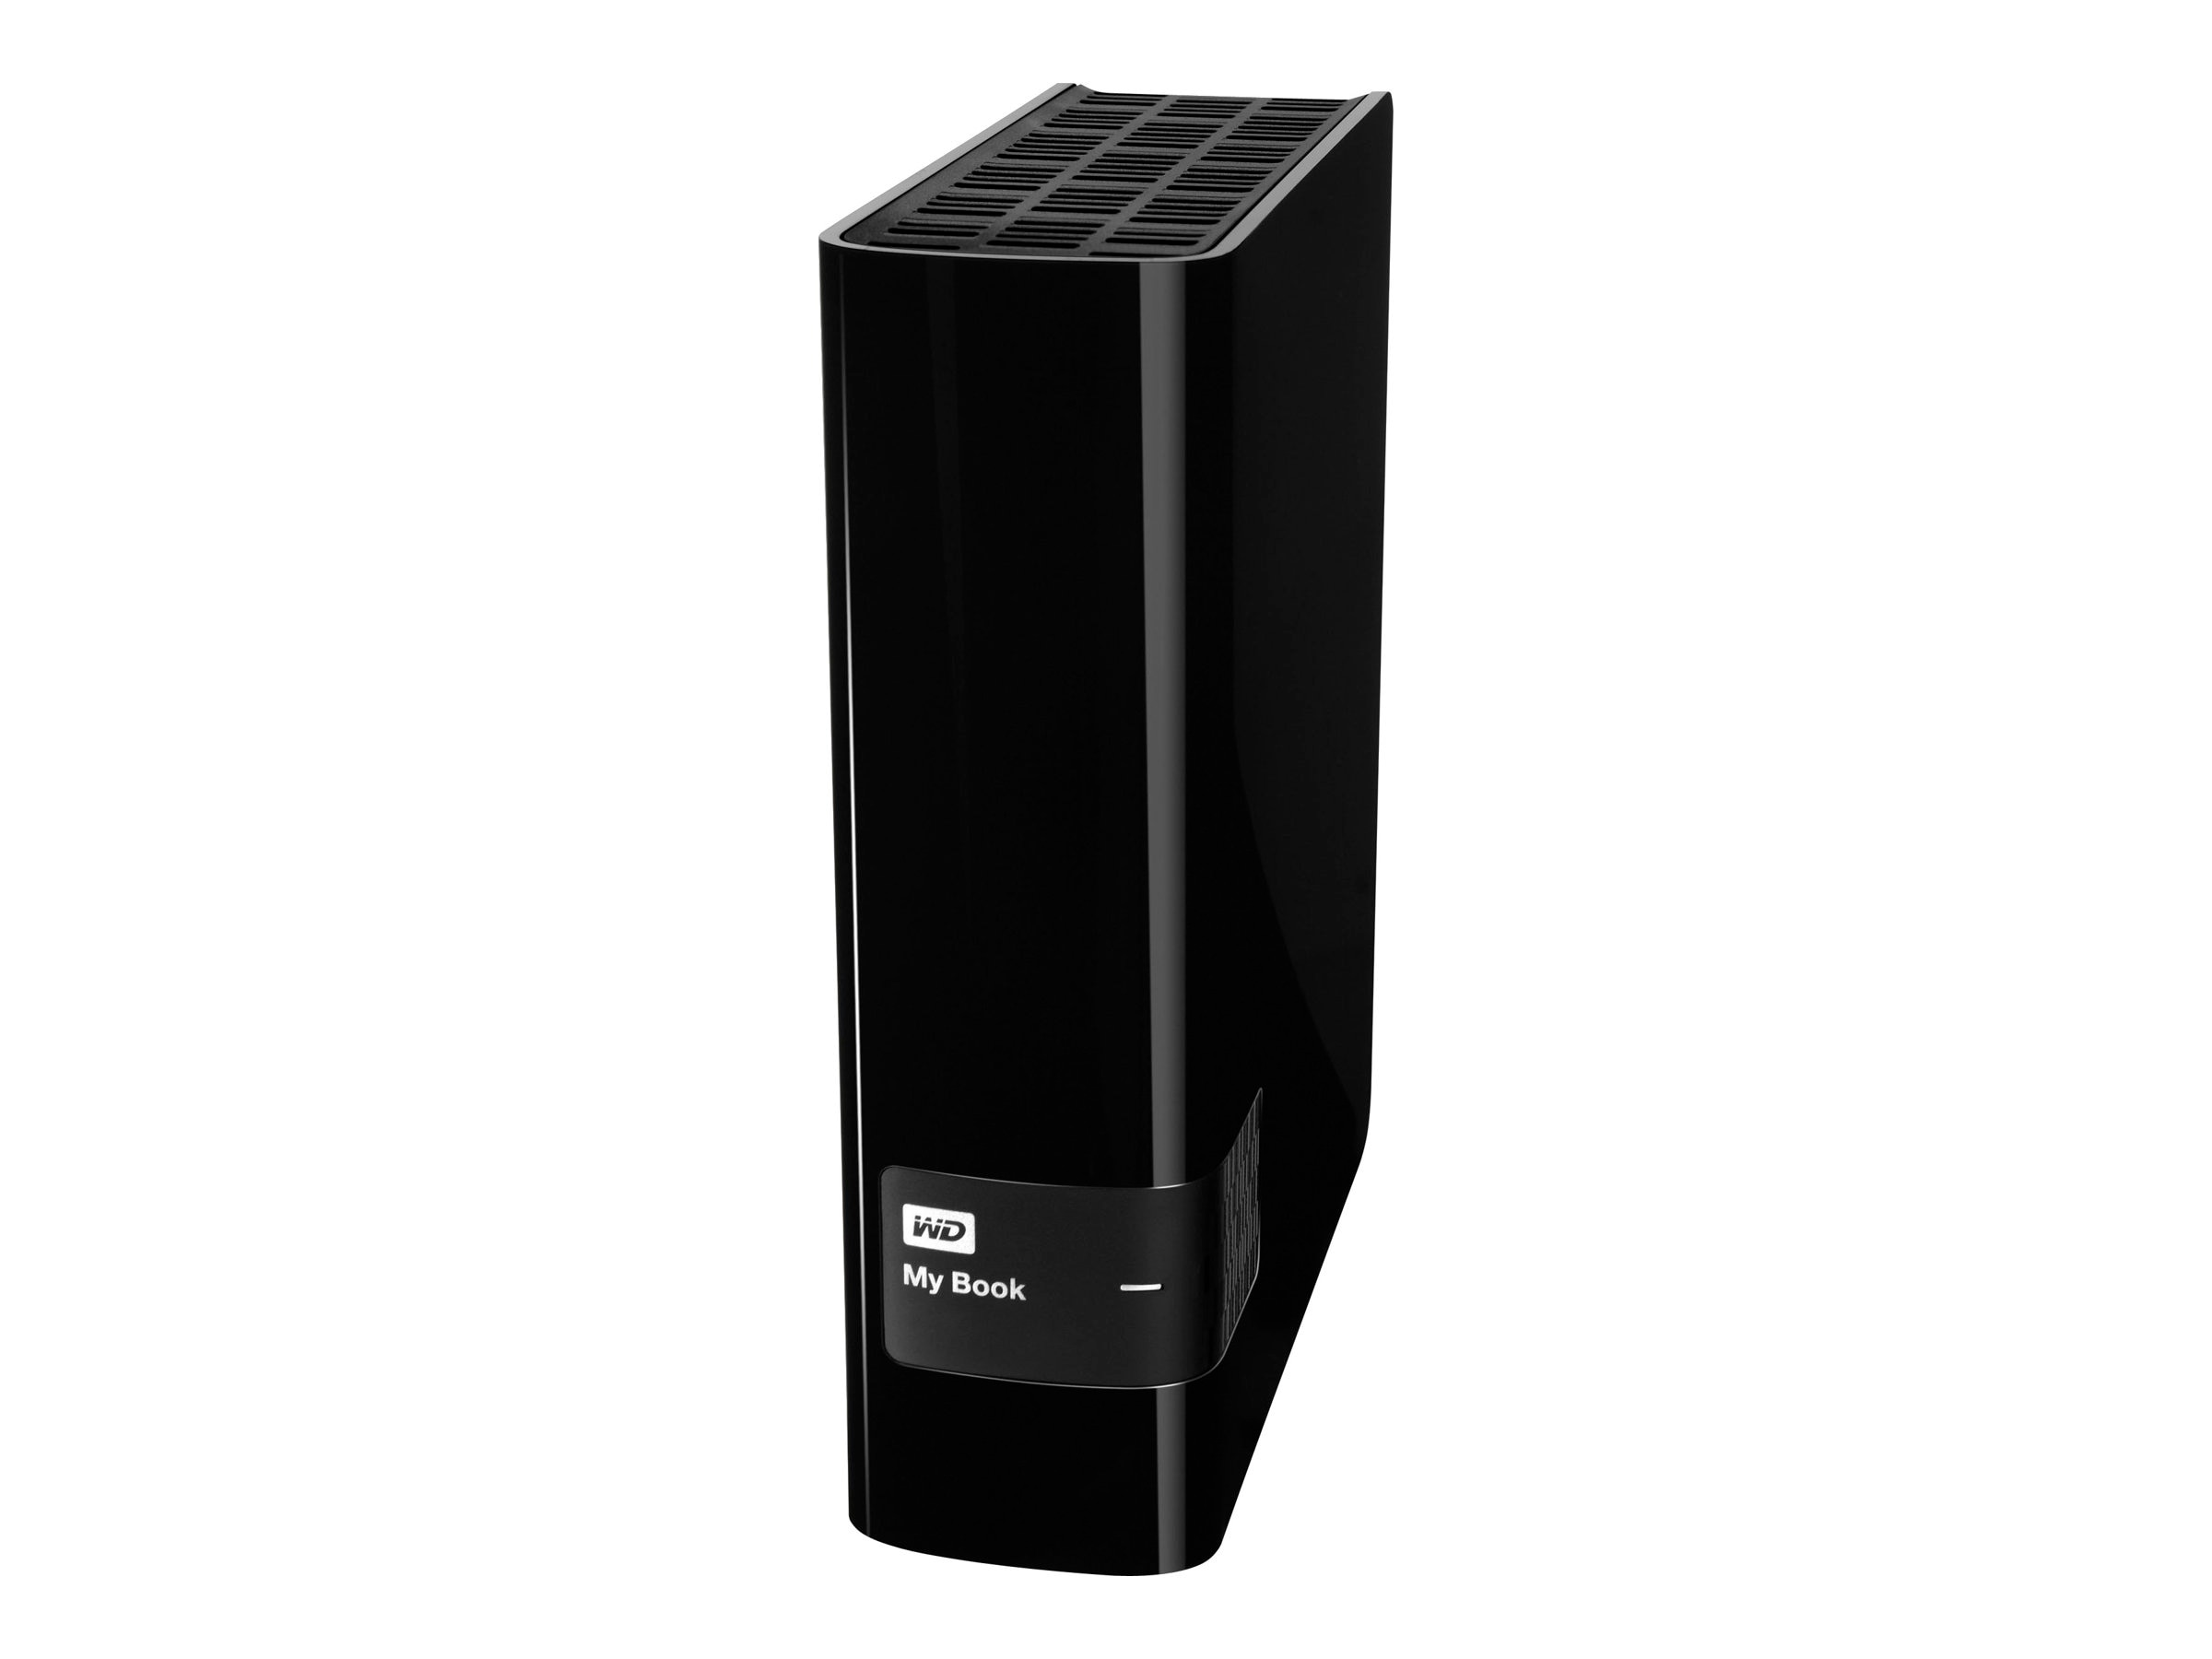 WD 2TB My Book Desktop USB 3.0 External Hard Drive, WDBFJK0020HBK-NESN, 16233141, Hard Drives - External